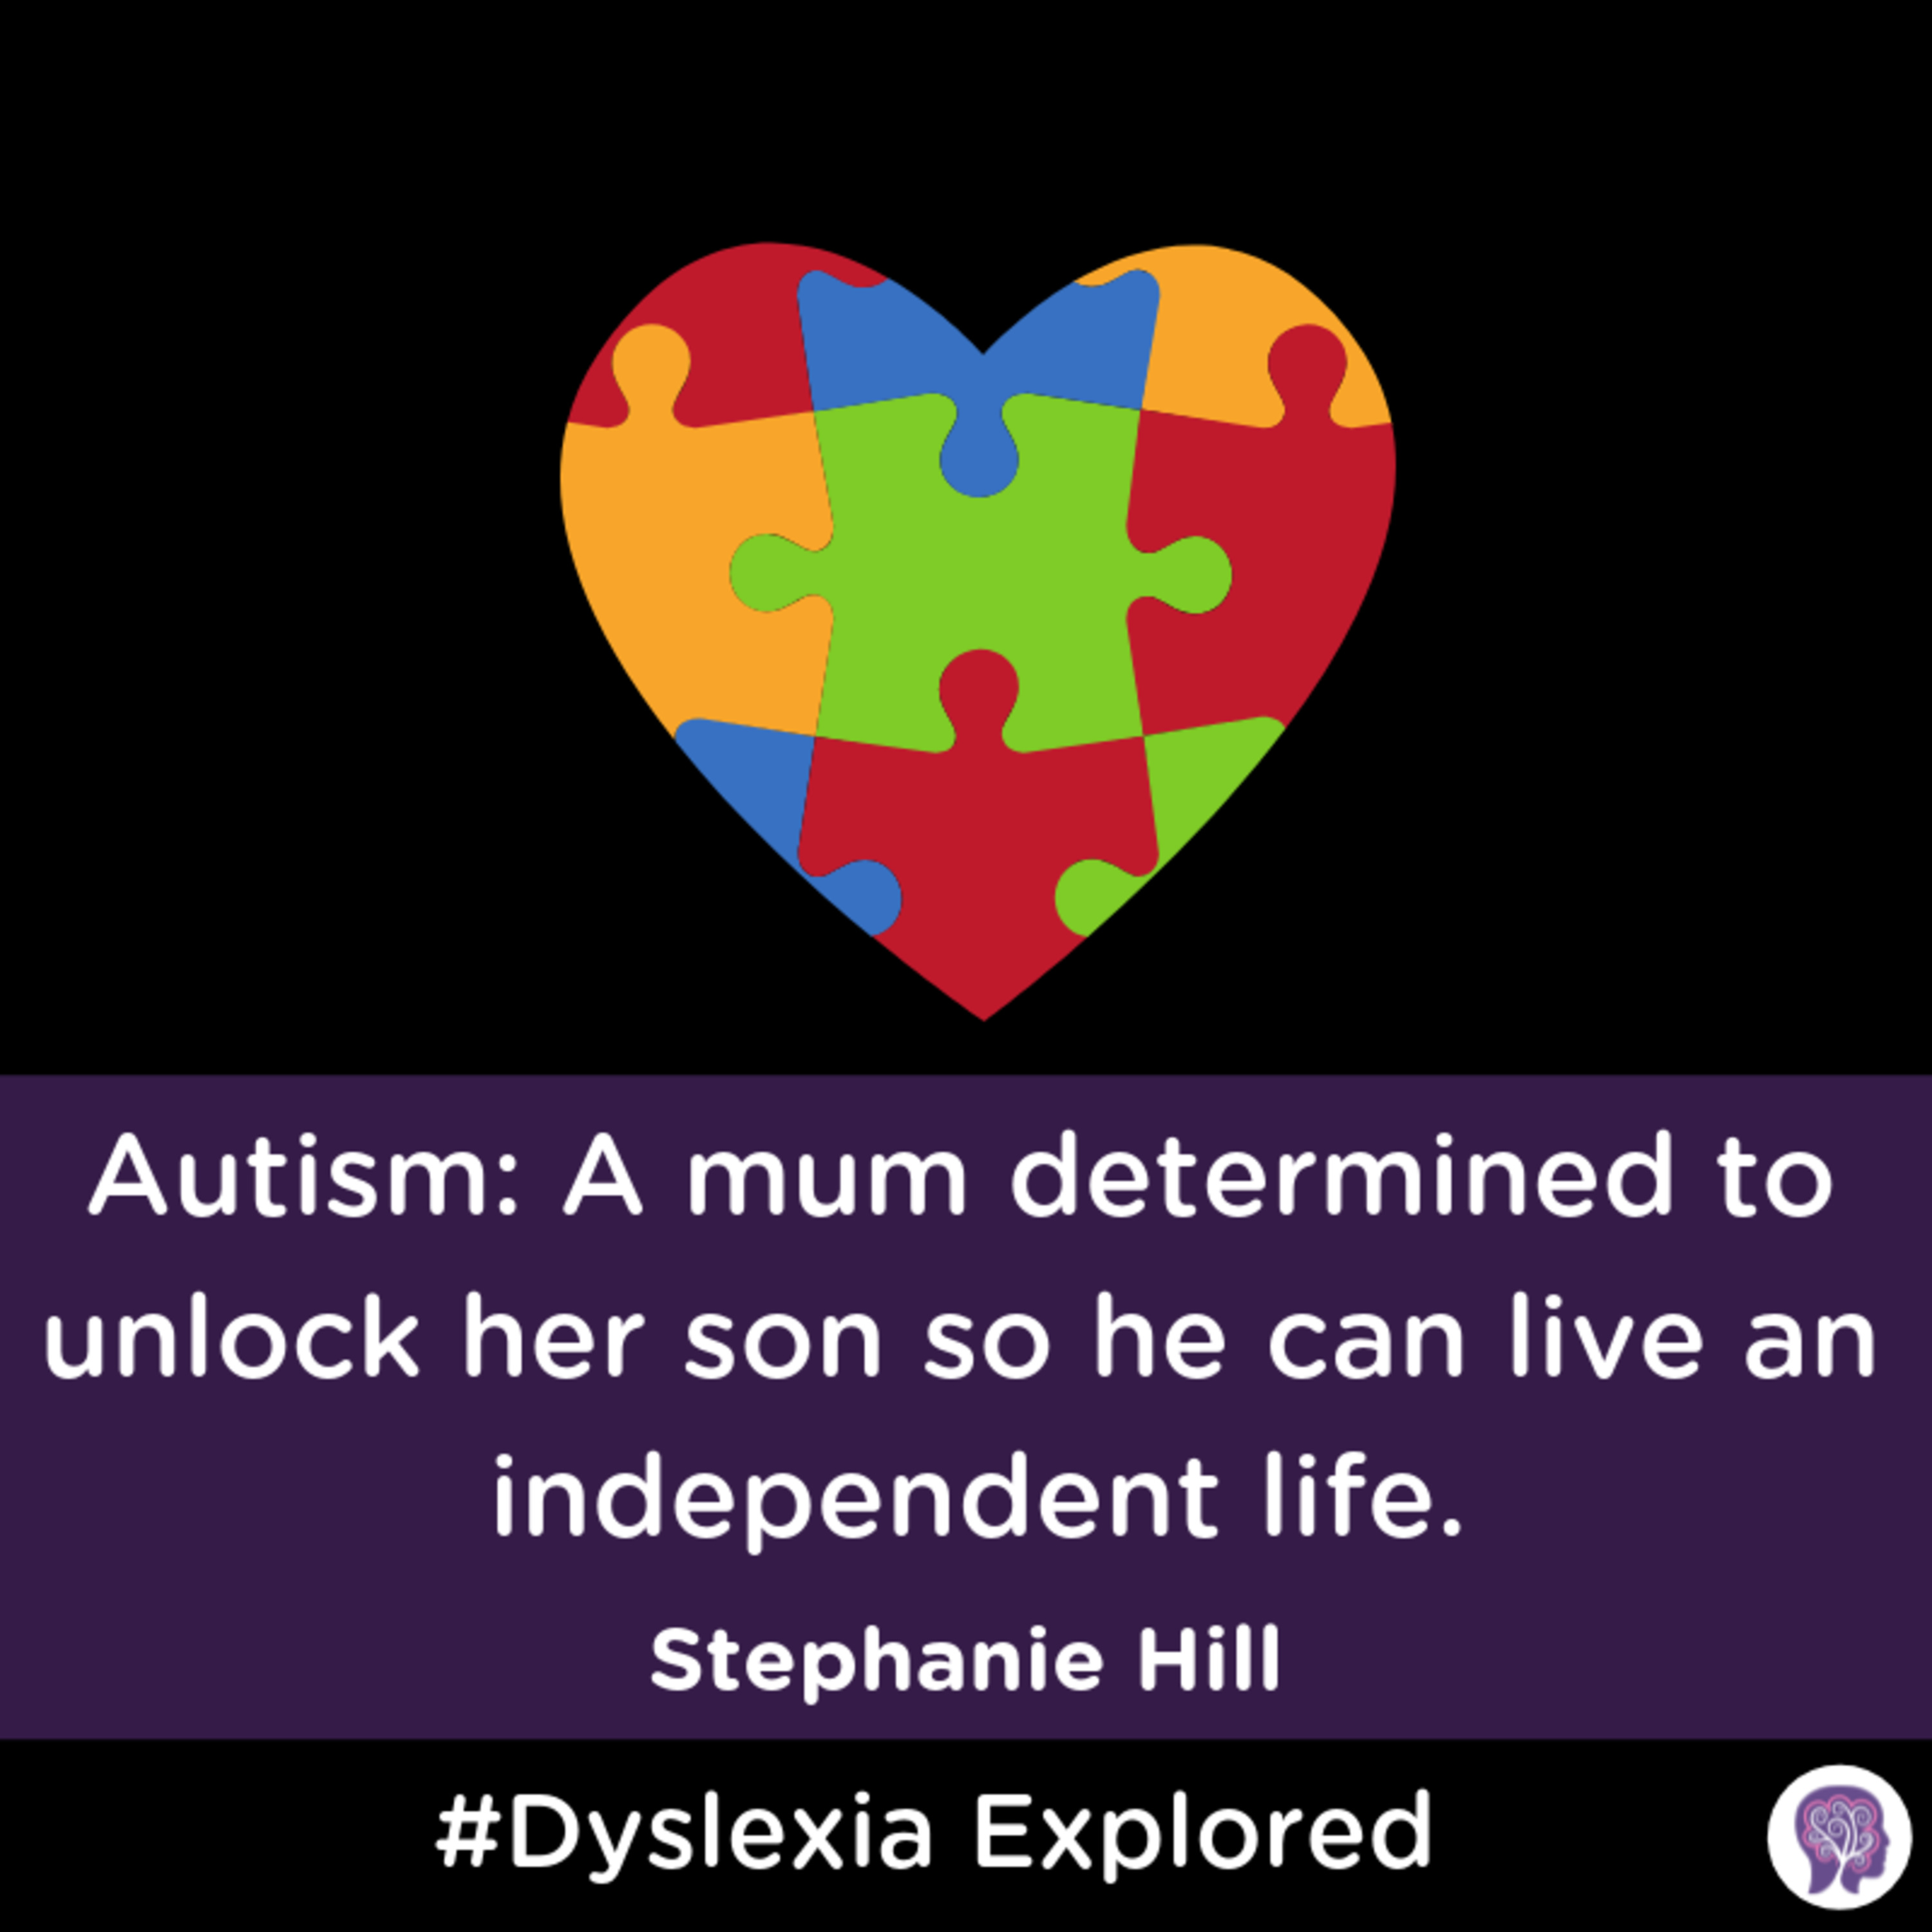 #35 Autism: A mum determined to unlock her son so he can live an independent life. Stephanie Hill